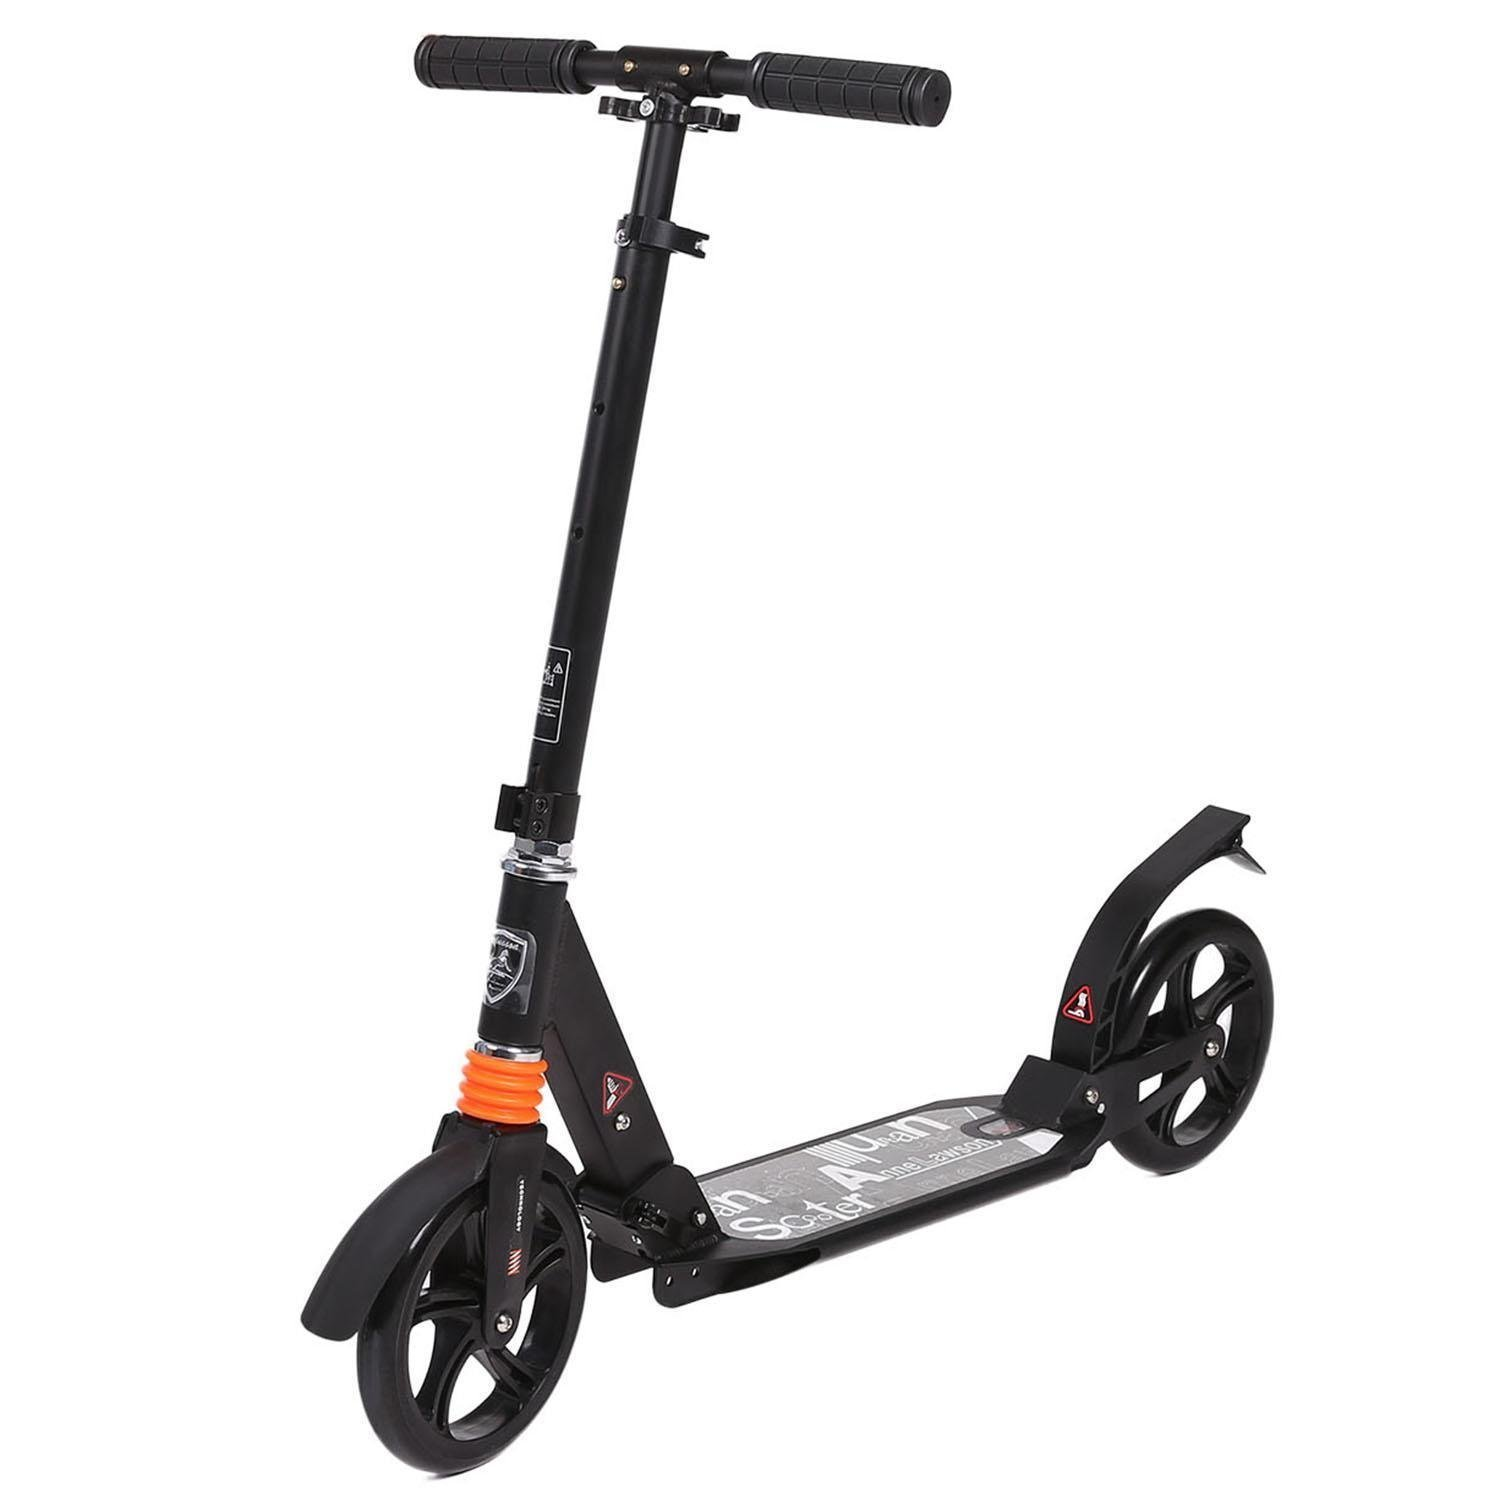 Adults Foldable Kick Scooter Lightweight Height Adjustable Aluminum Alloy T-Style Design(US STOCK)